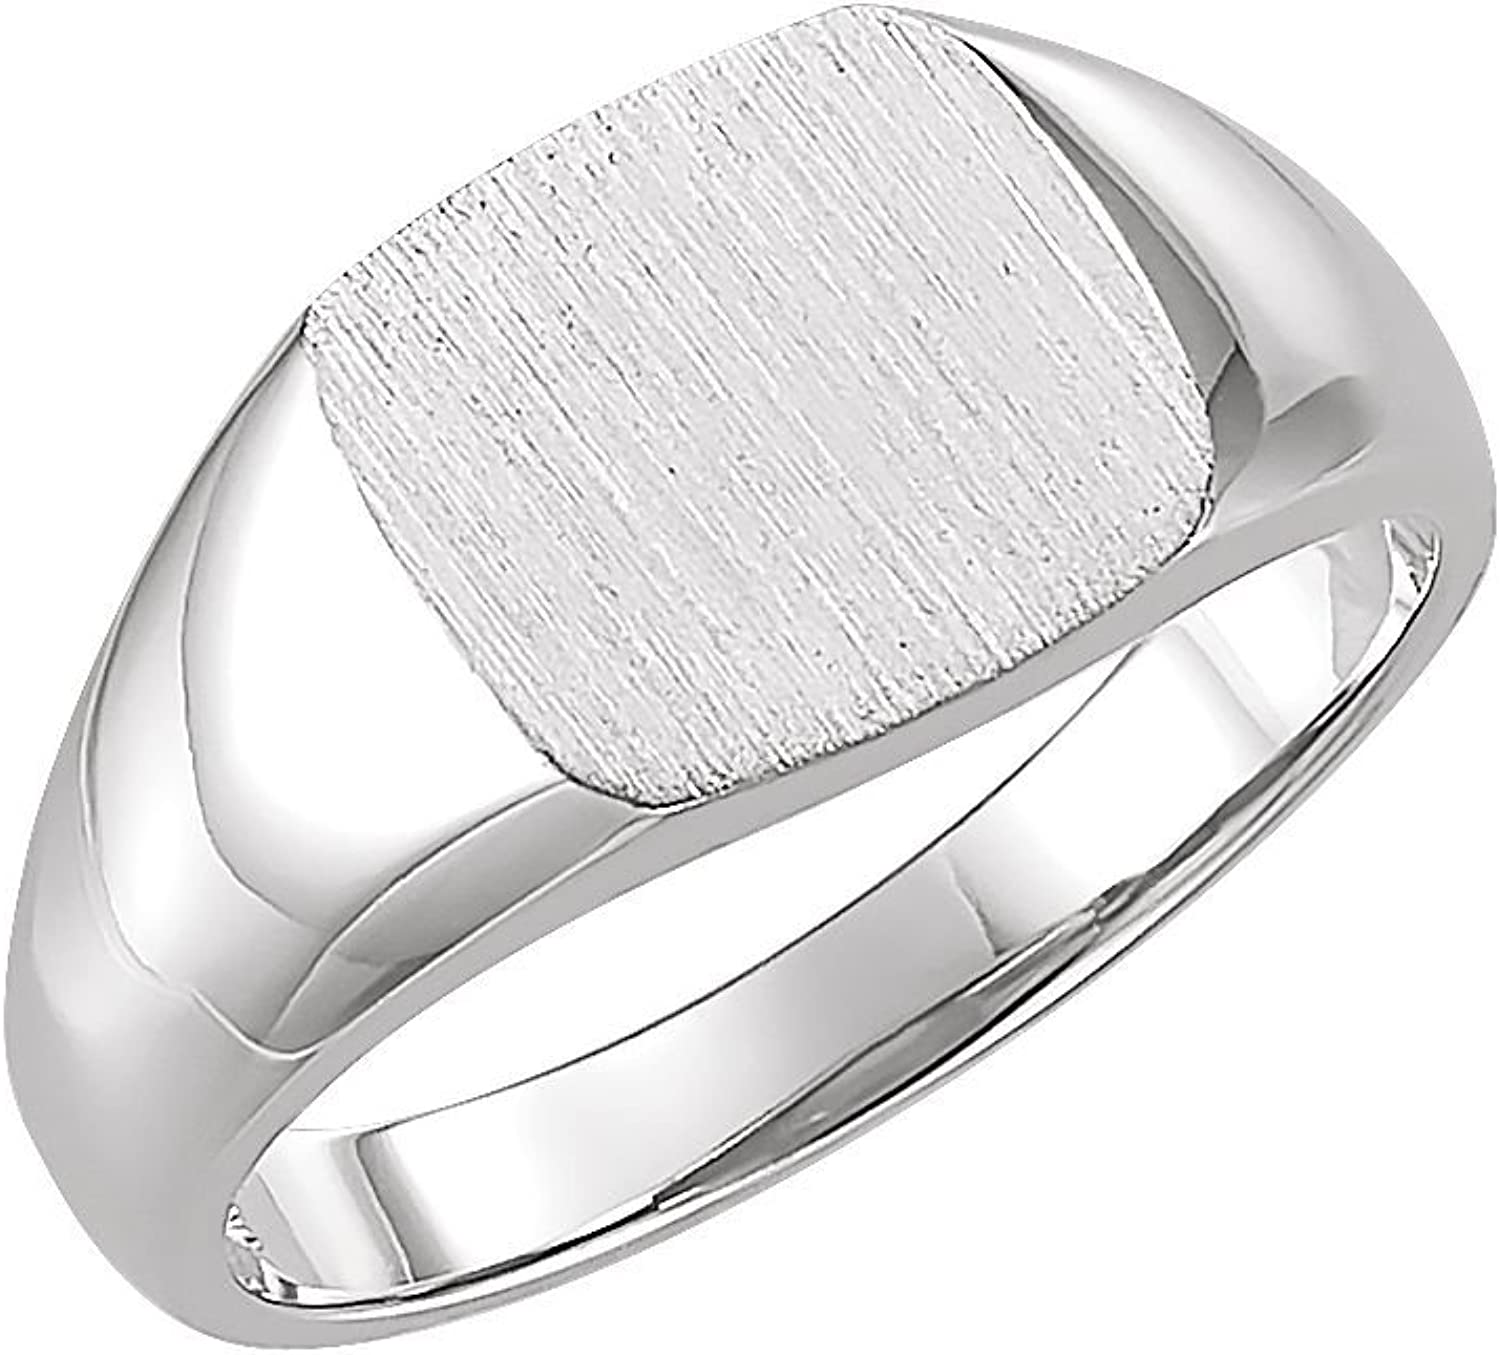 Beautiful Sterling silver 925 sterling Sterlingsilver Open Back Square Signet Ring